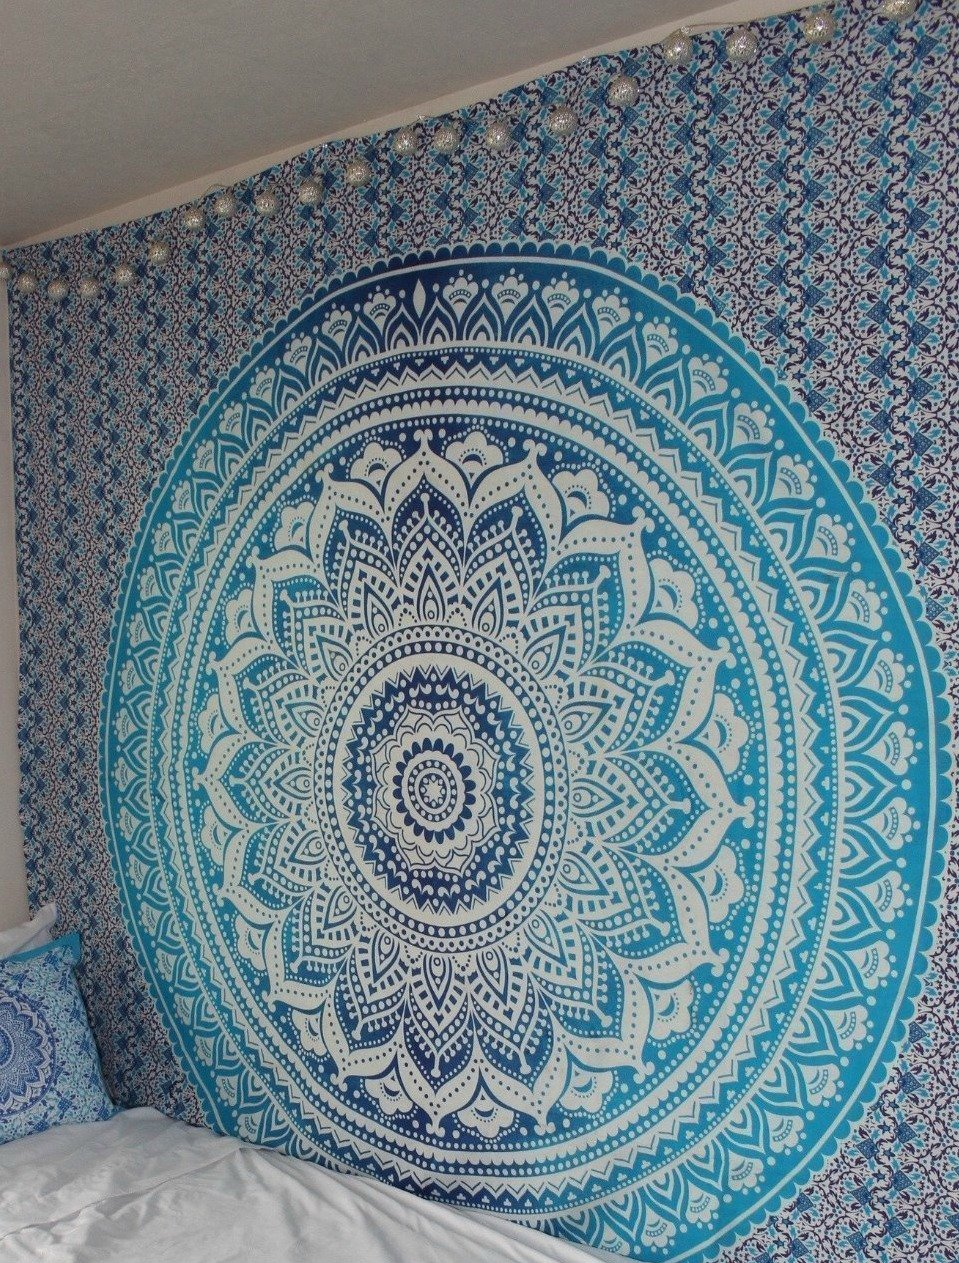 Psychedelic Tapestry Wall Hanging Indian Mandala Throw Bohemian Hippie Bedspread